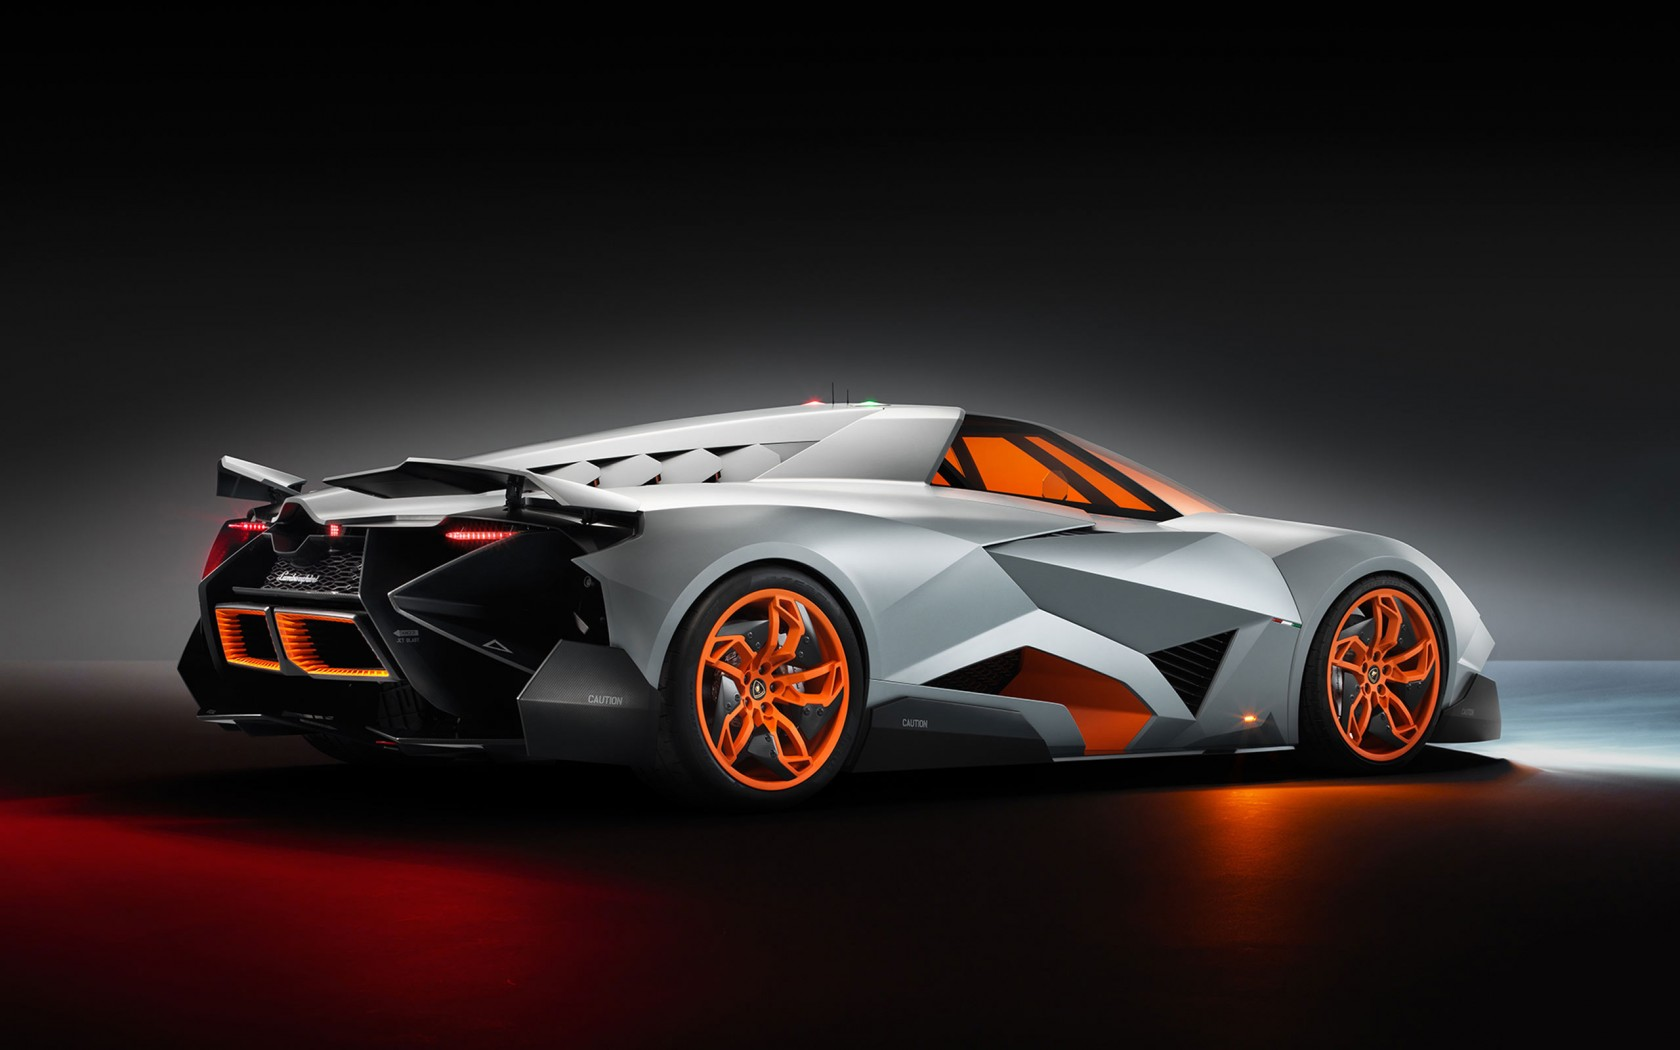 Lamborghini Egoista Concept 2 Wallpaper | HD Car Wallpapers